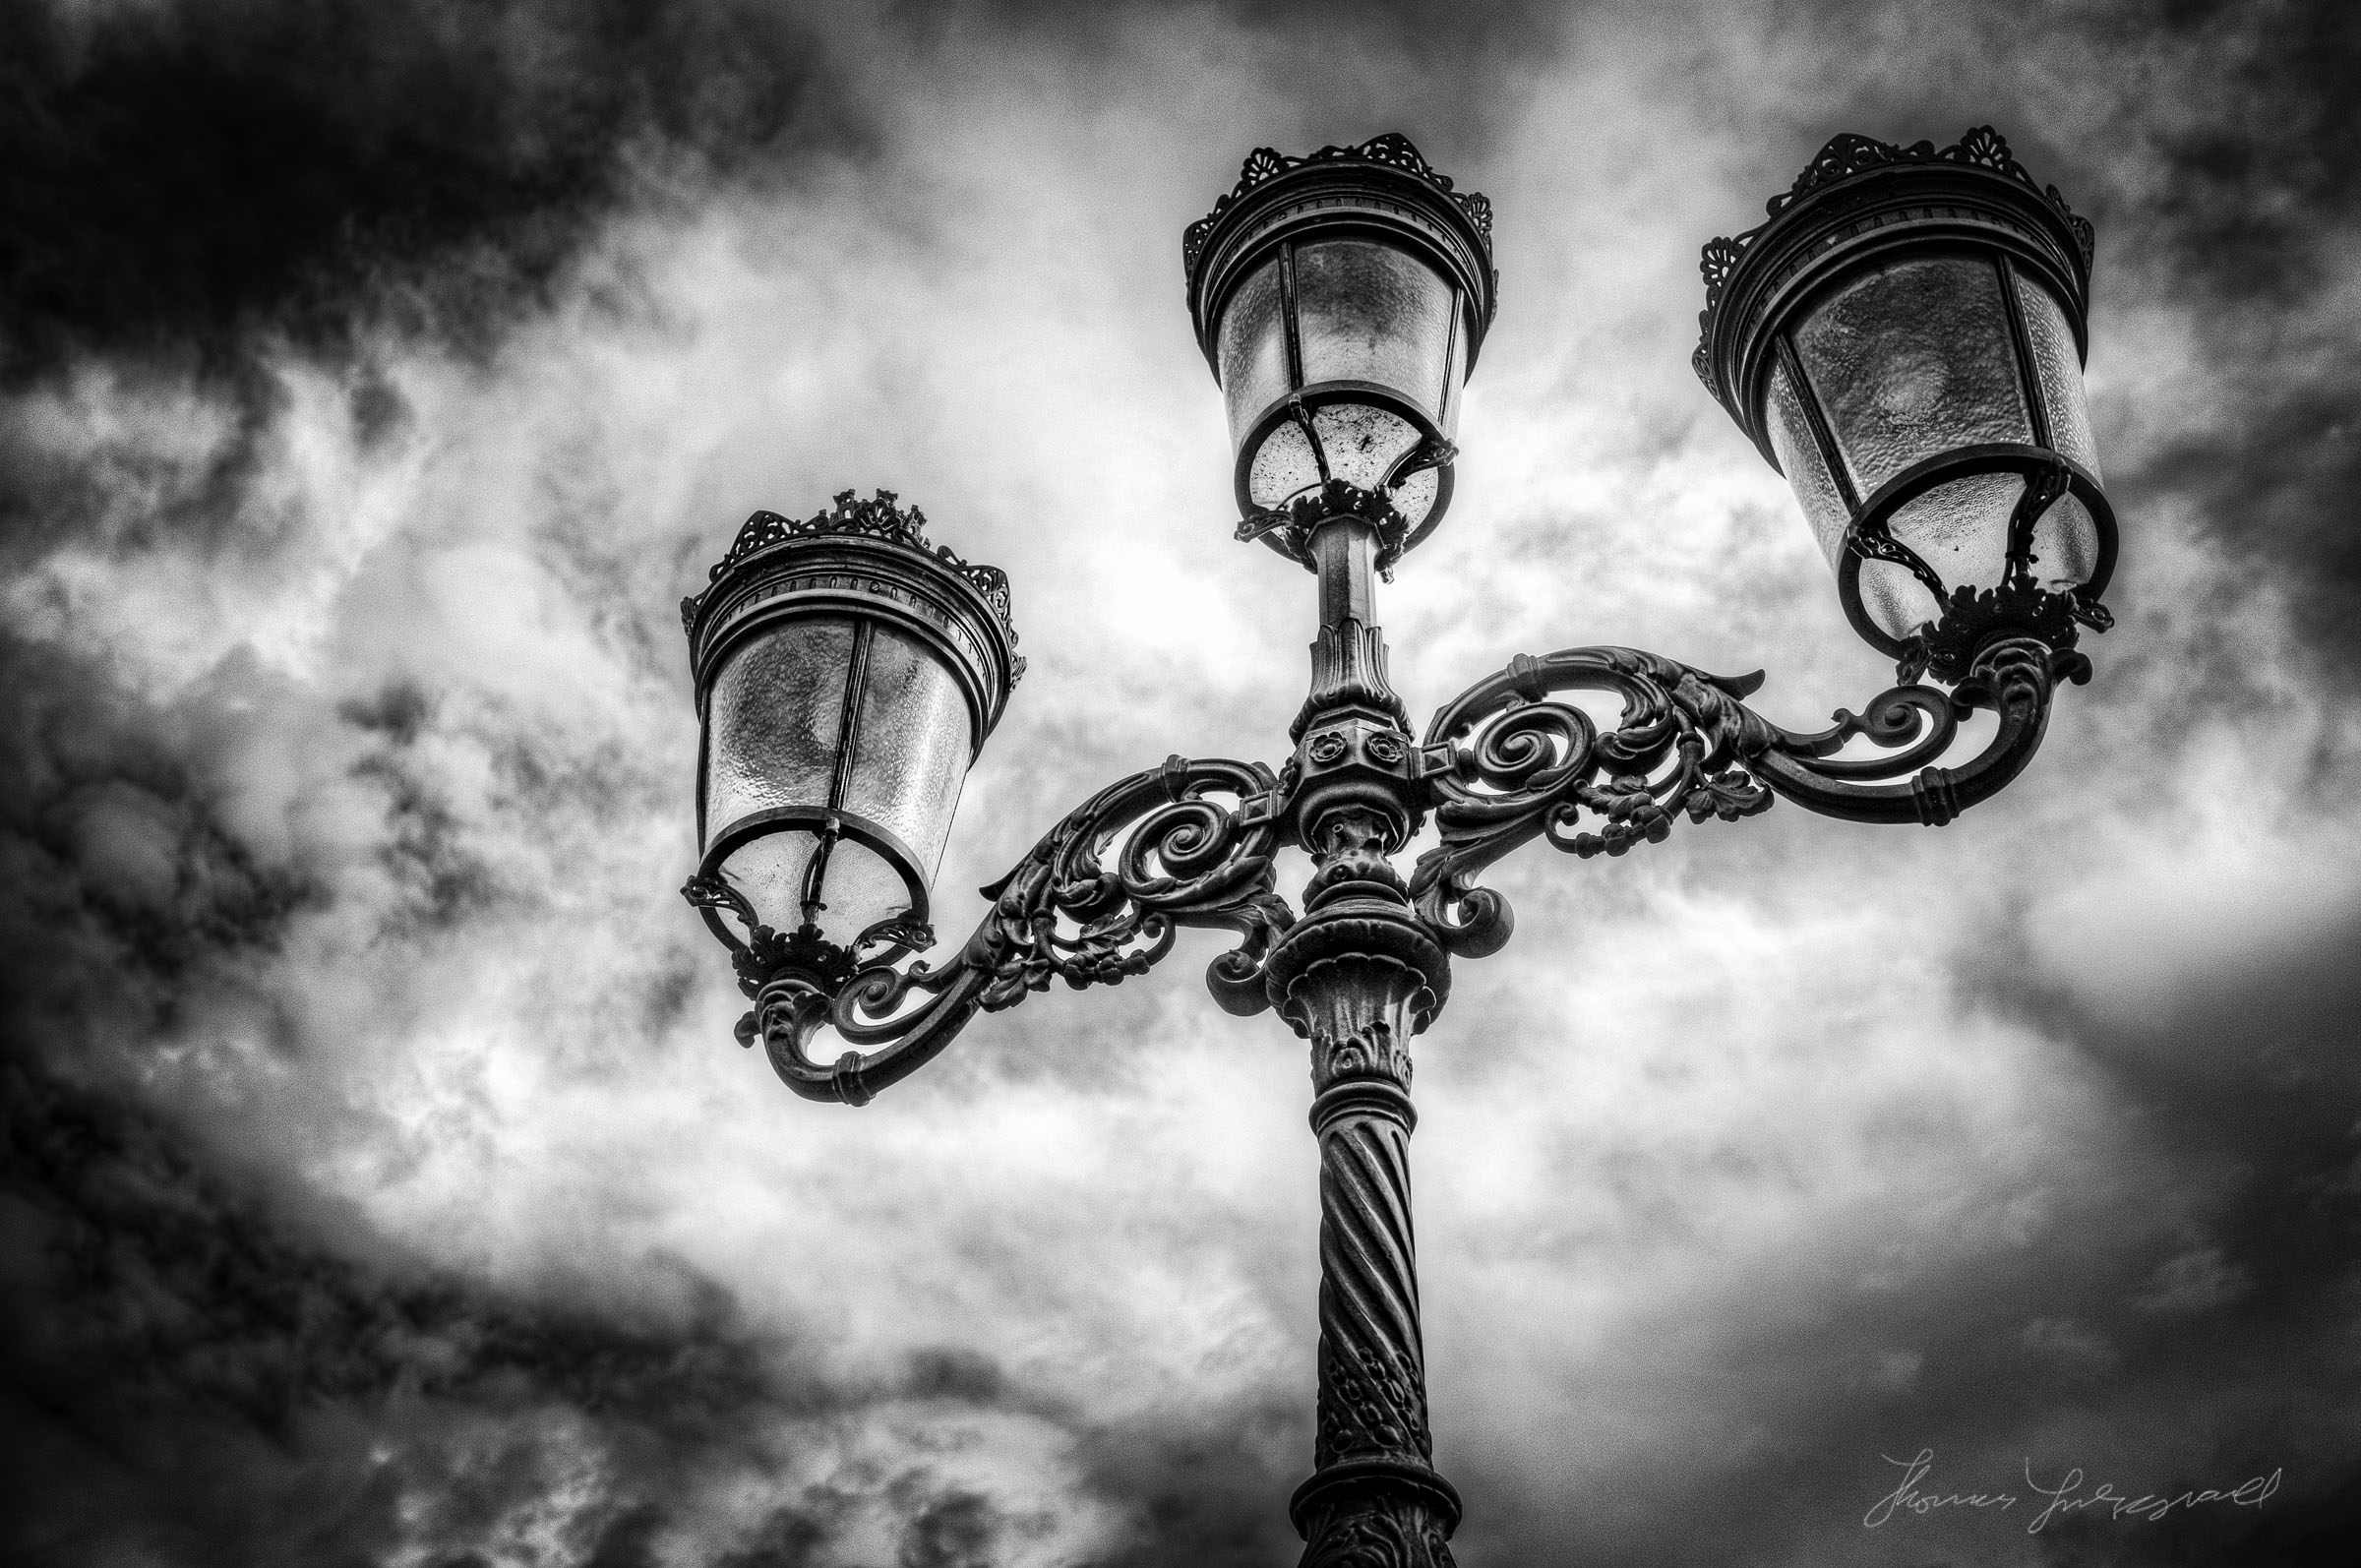 Dublin Lamppost - HDR shot with X100 and Processed with Quicklux for Lightroom